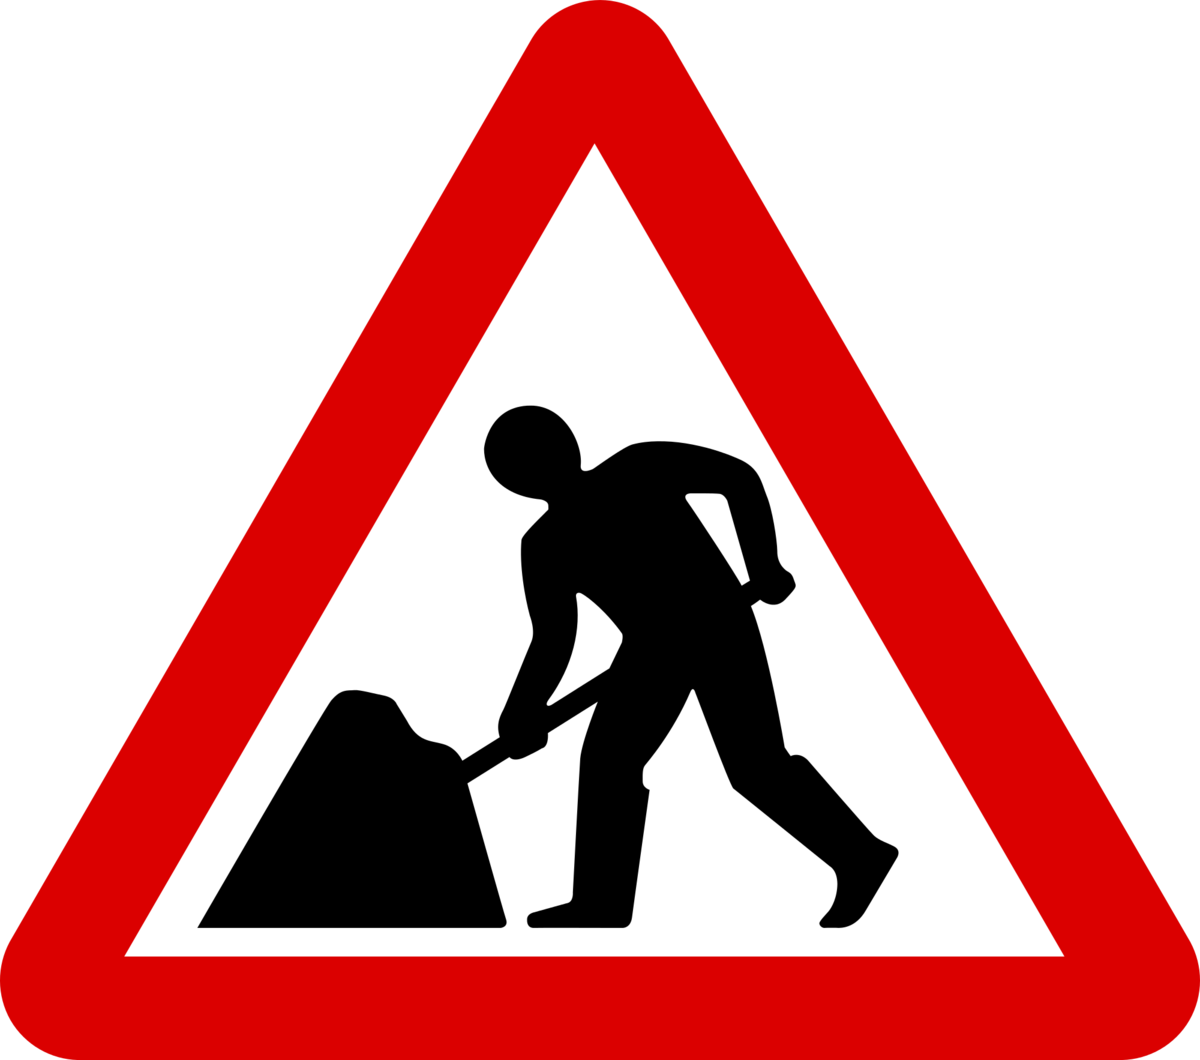 City commences with roadworks. Working clipart road work